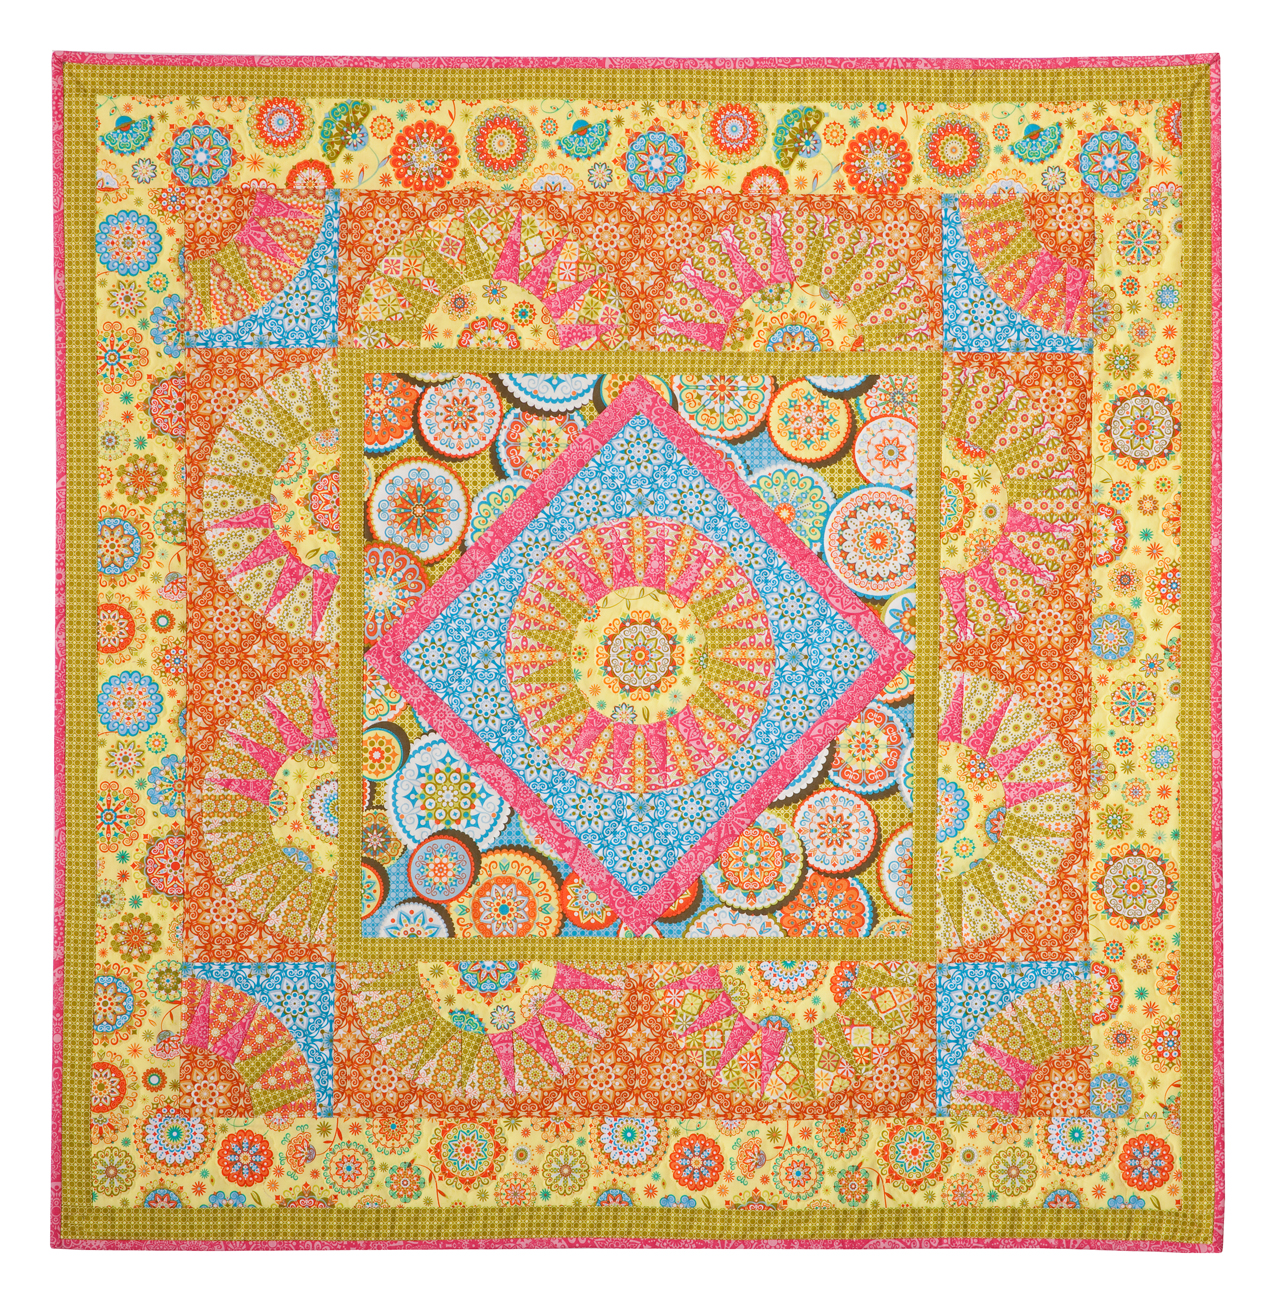 quilting templates free - creative ideas for you free pdf quilt patterns